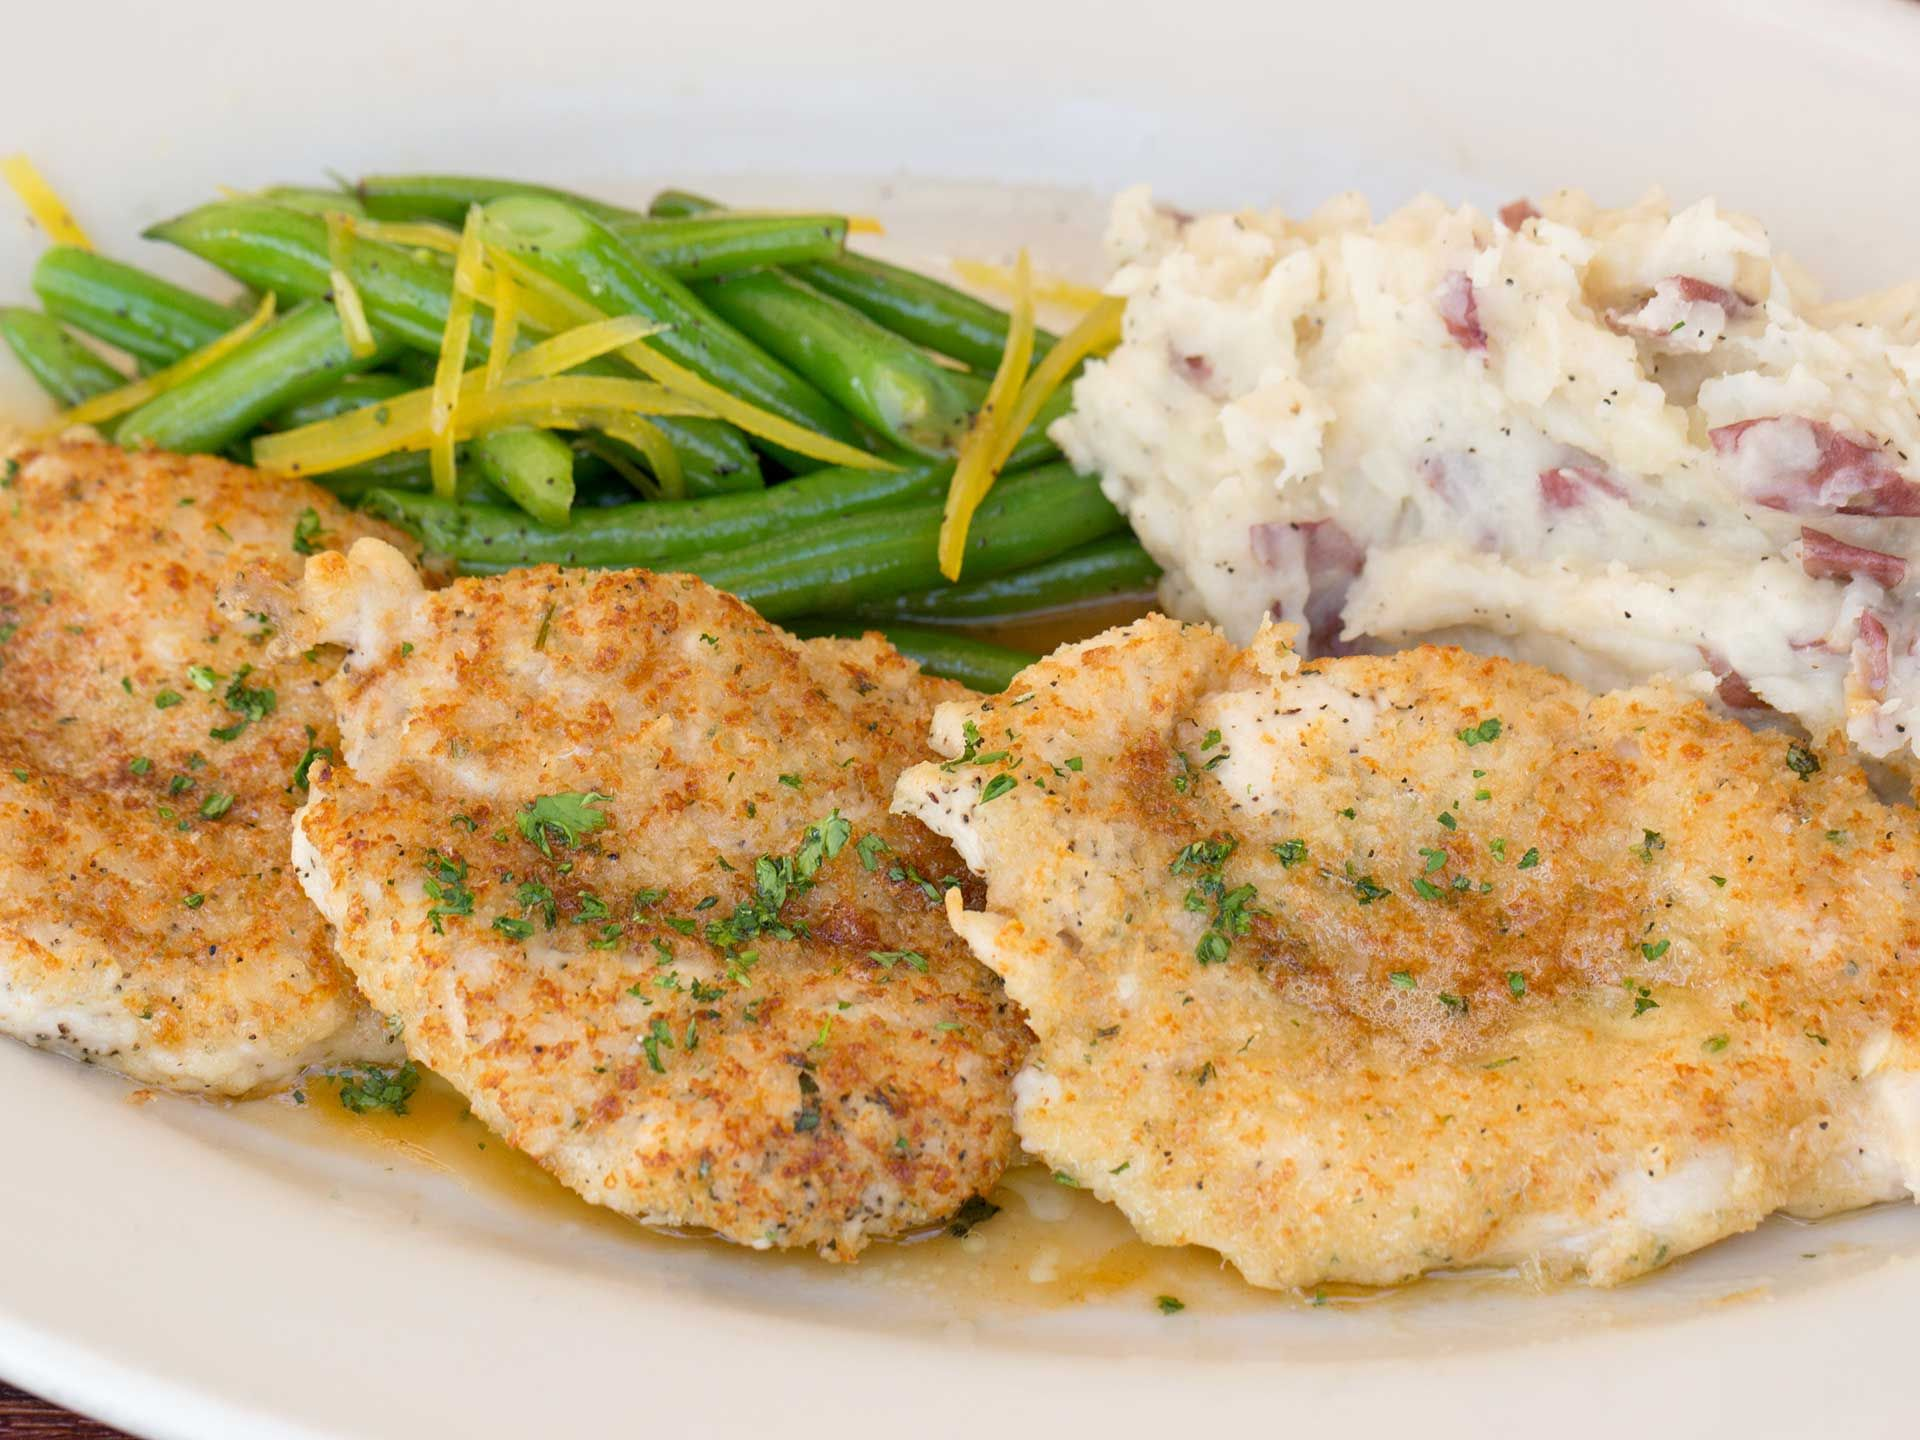 parmesan-herb crusted chicken- sautéed chicken breasts coated with